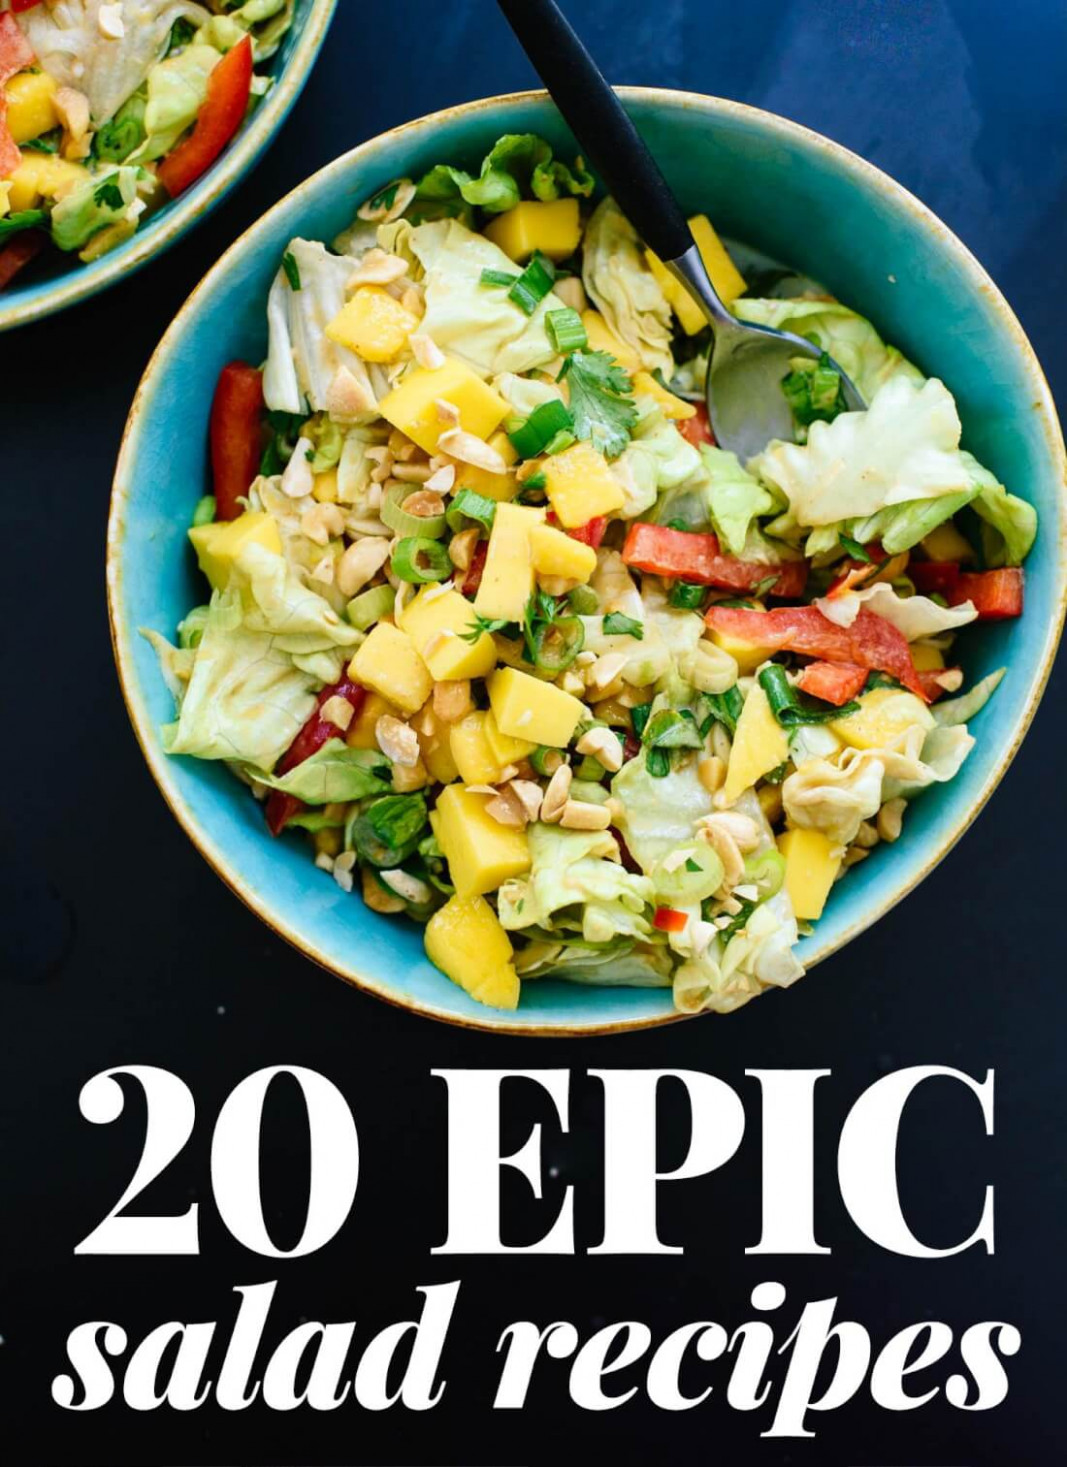 20 Epic Salad Recipes - Cookie and Kate